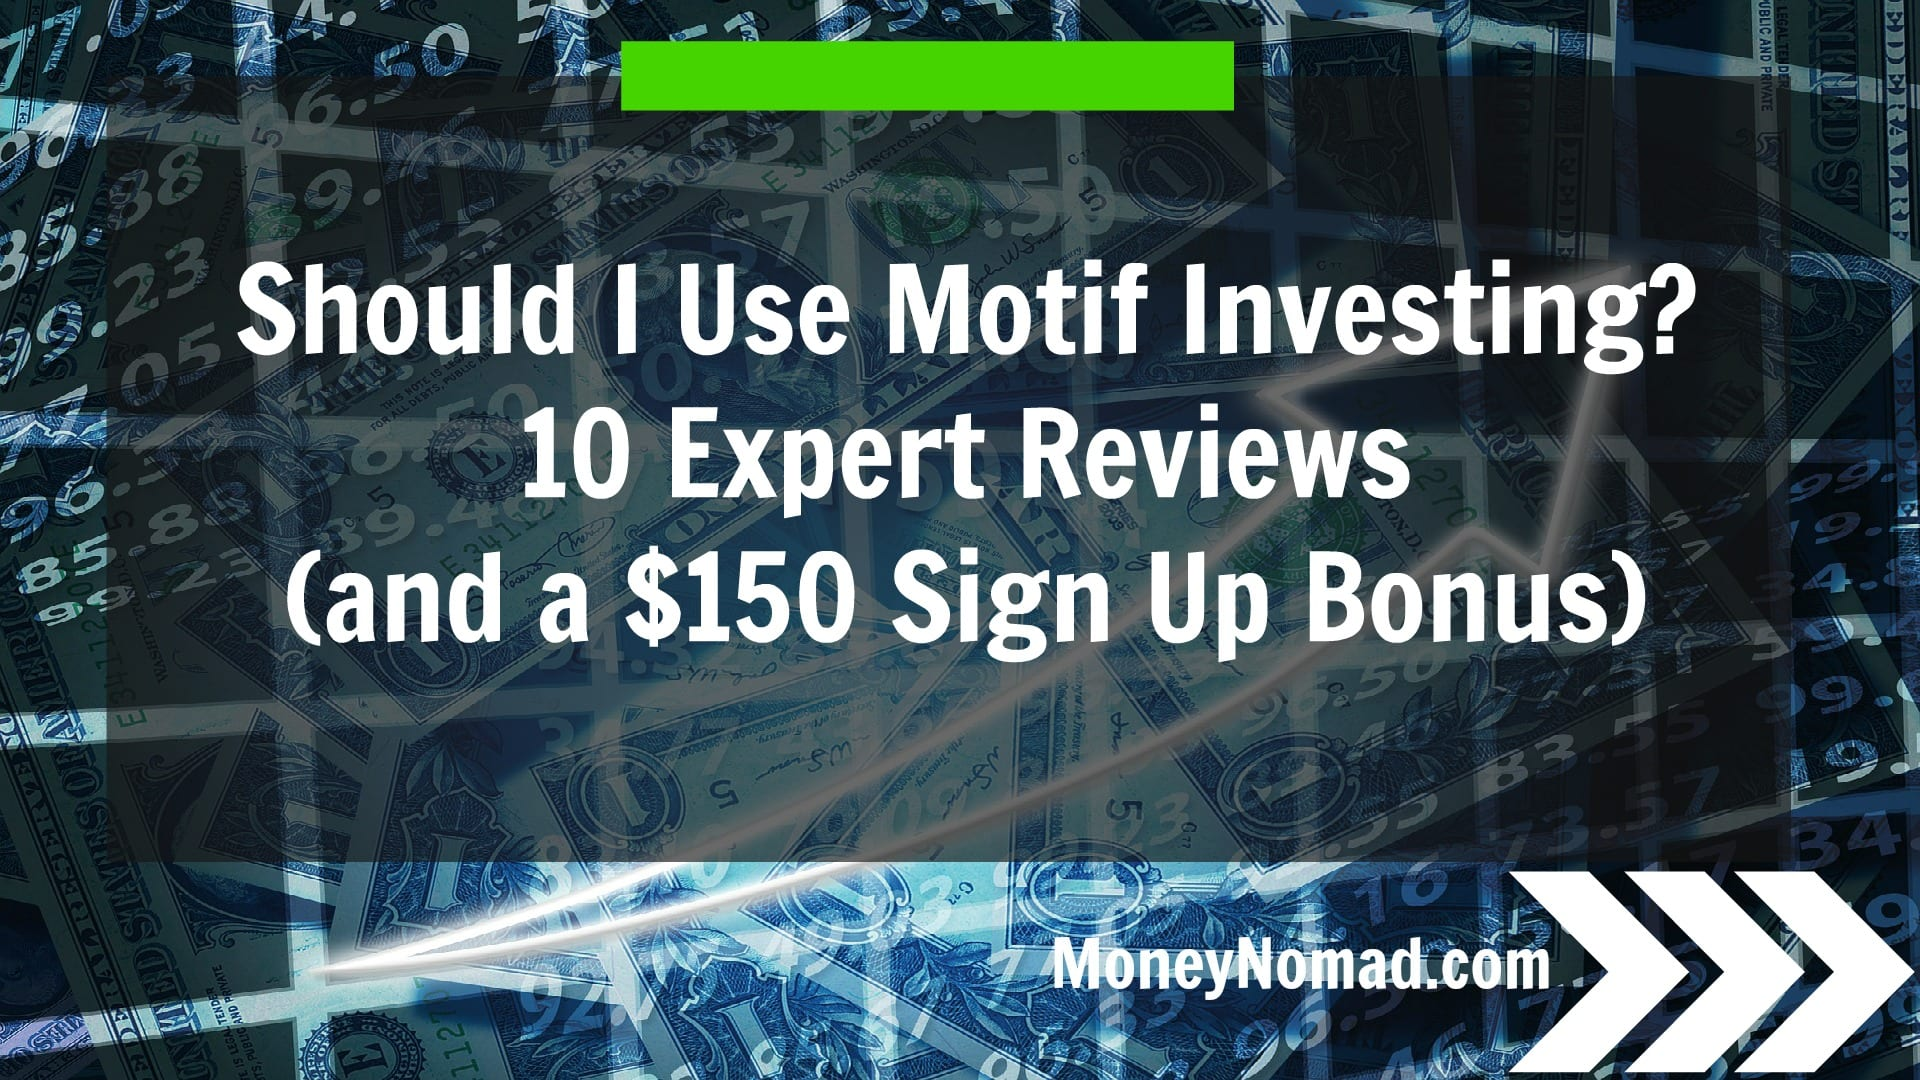 Should I Invest in Motif Investing Expert Reviews